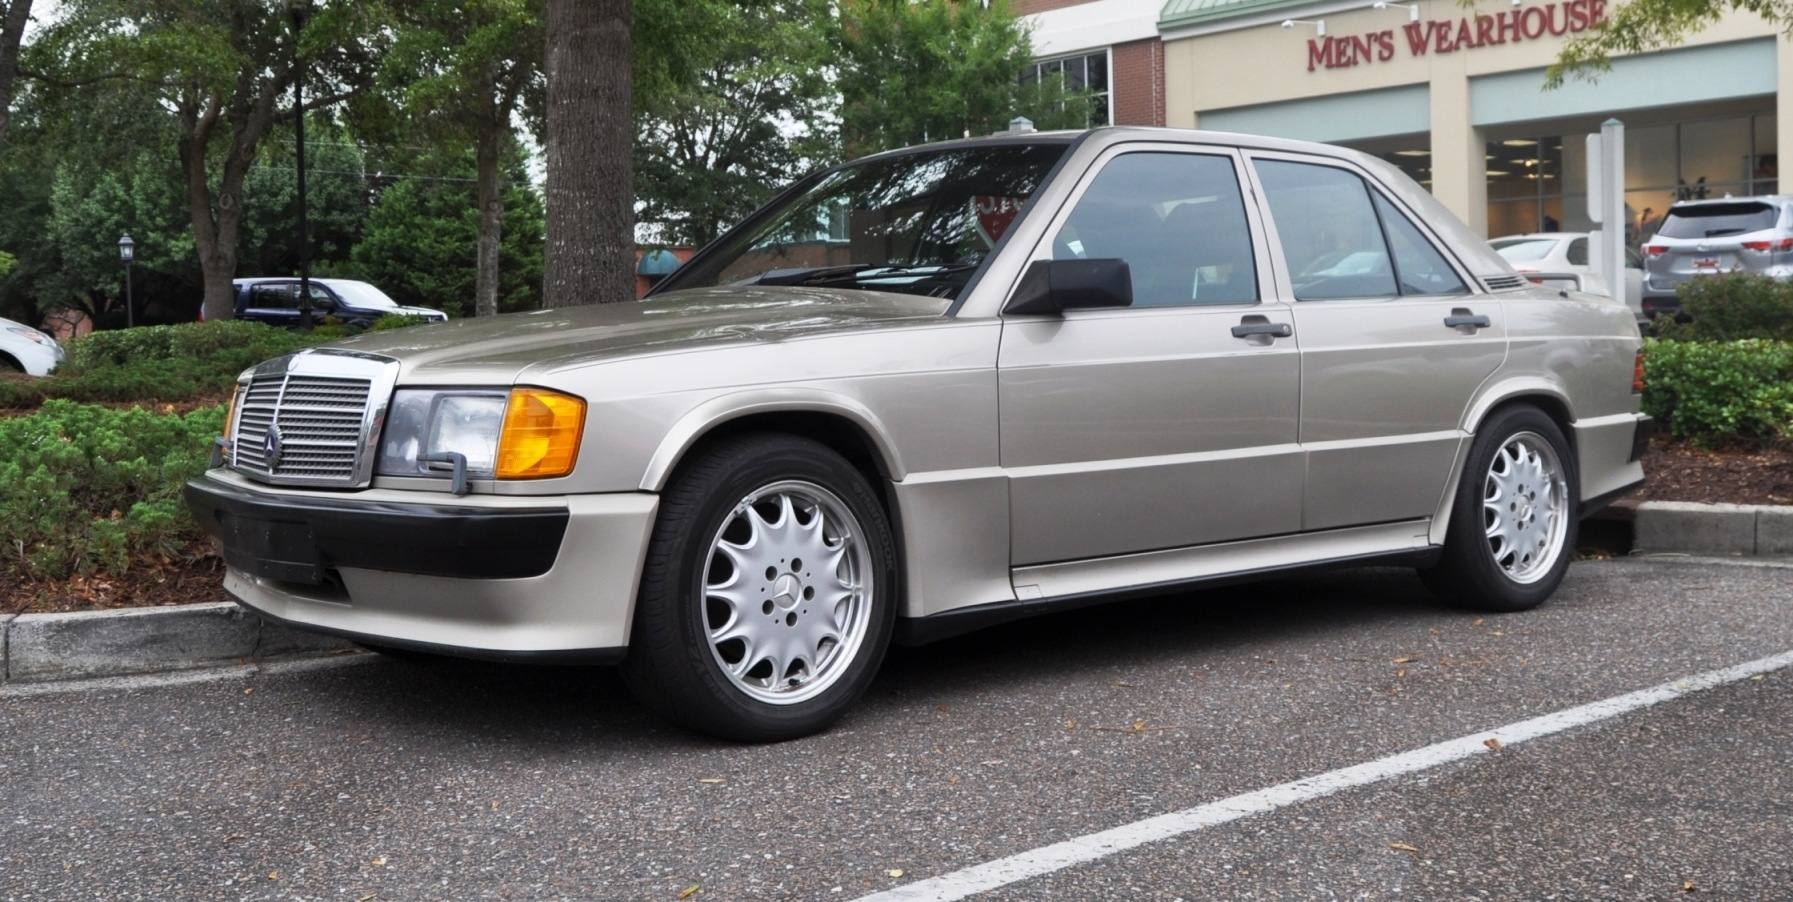 Luxury Cars Of Charleston >> Charleston Cars and Coffee Gallery - 1989 Mercedes-Benz 190E 2.3-16 Cosworth is For Sale!